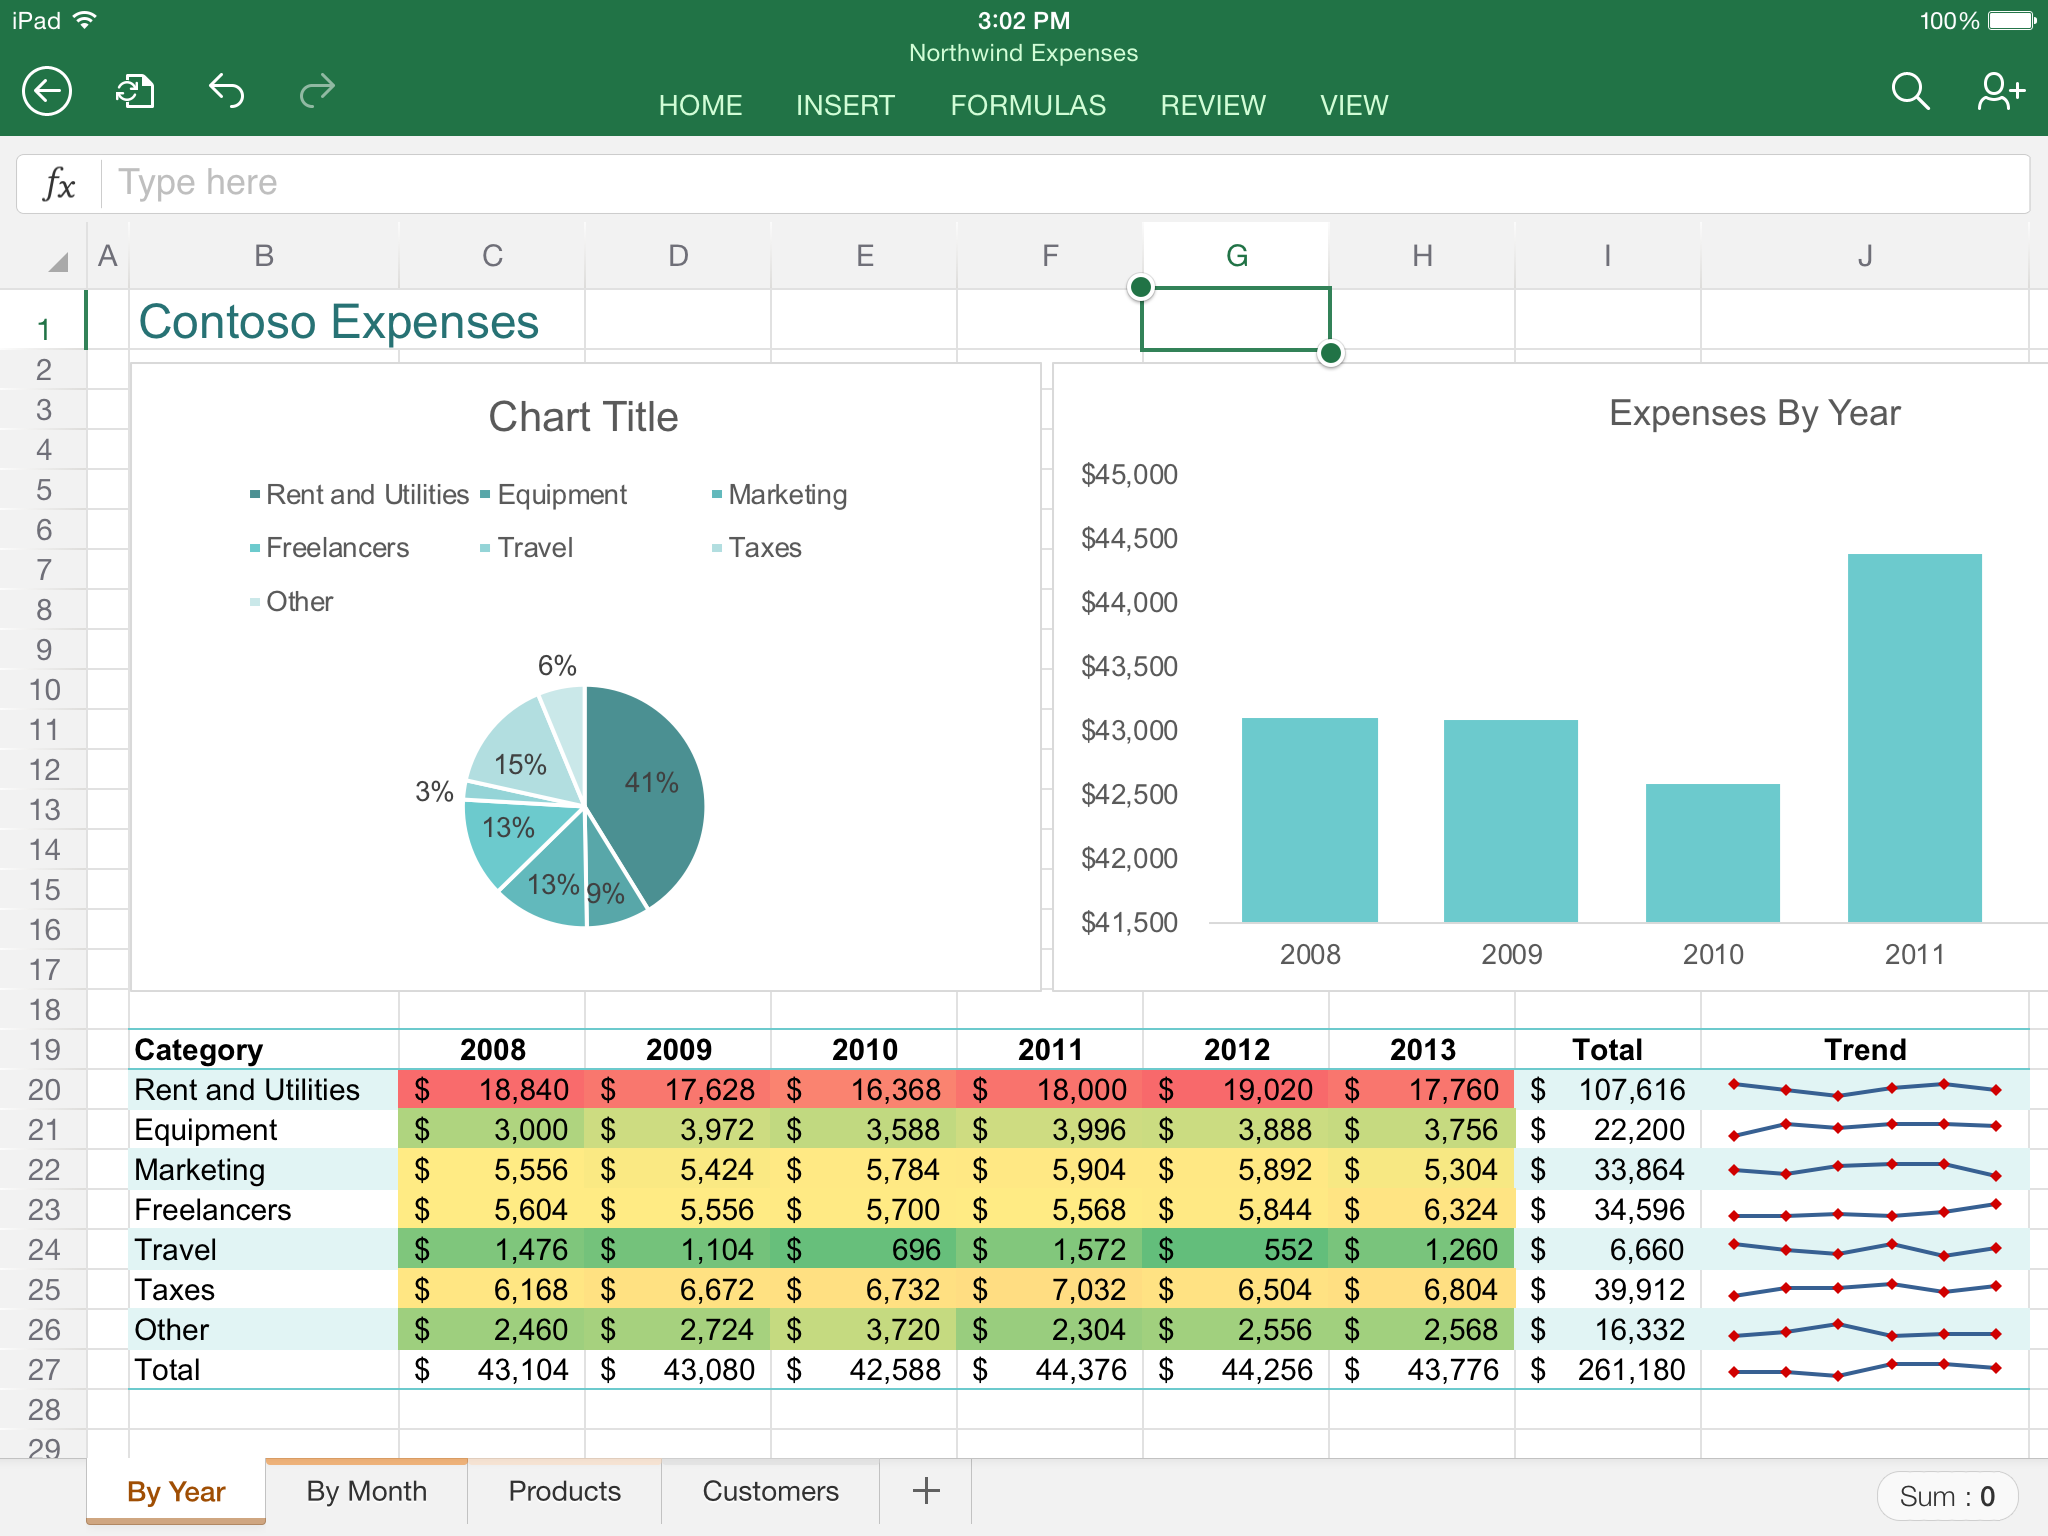 Ediblewildsus  Mesmerizing App Highlight Excel  Mobile Digital Now With Remarkable Excel In Action With Awesome Two Y Axis Excel Also Insert Row Shortcut Excel In Addition How To Save Excel As Pdf And How To Vlookup In Excel As Well As Pdf To Excel Conversion Additionally Excel Automation From Youstonybrookedu With Ediblewildsus  Remarkable App Highlight Excel  Mobile Digital Now With Awesome Excel In Action And Mesmerizing Two Y Axis Excel Also Insert Row Shortcut Excel In Addition How To Save Excel As Pdf From Youstonybrookedu